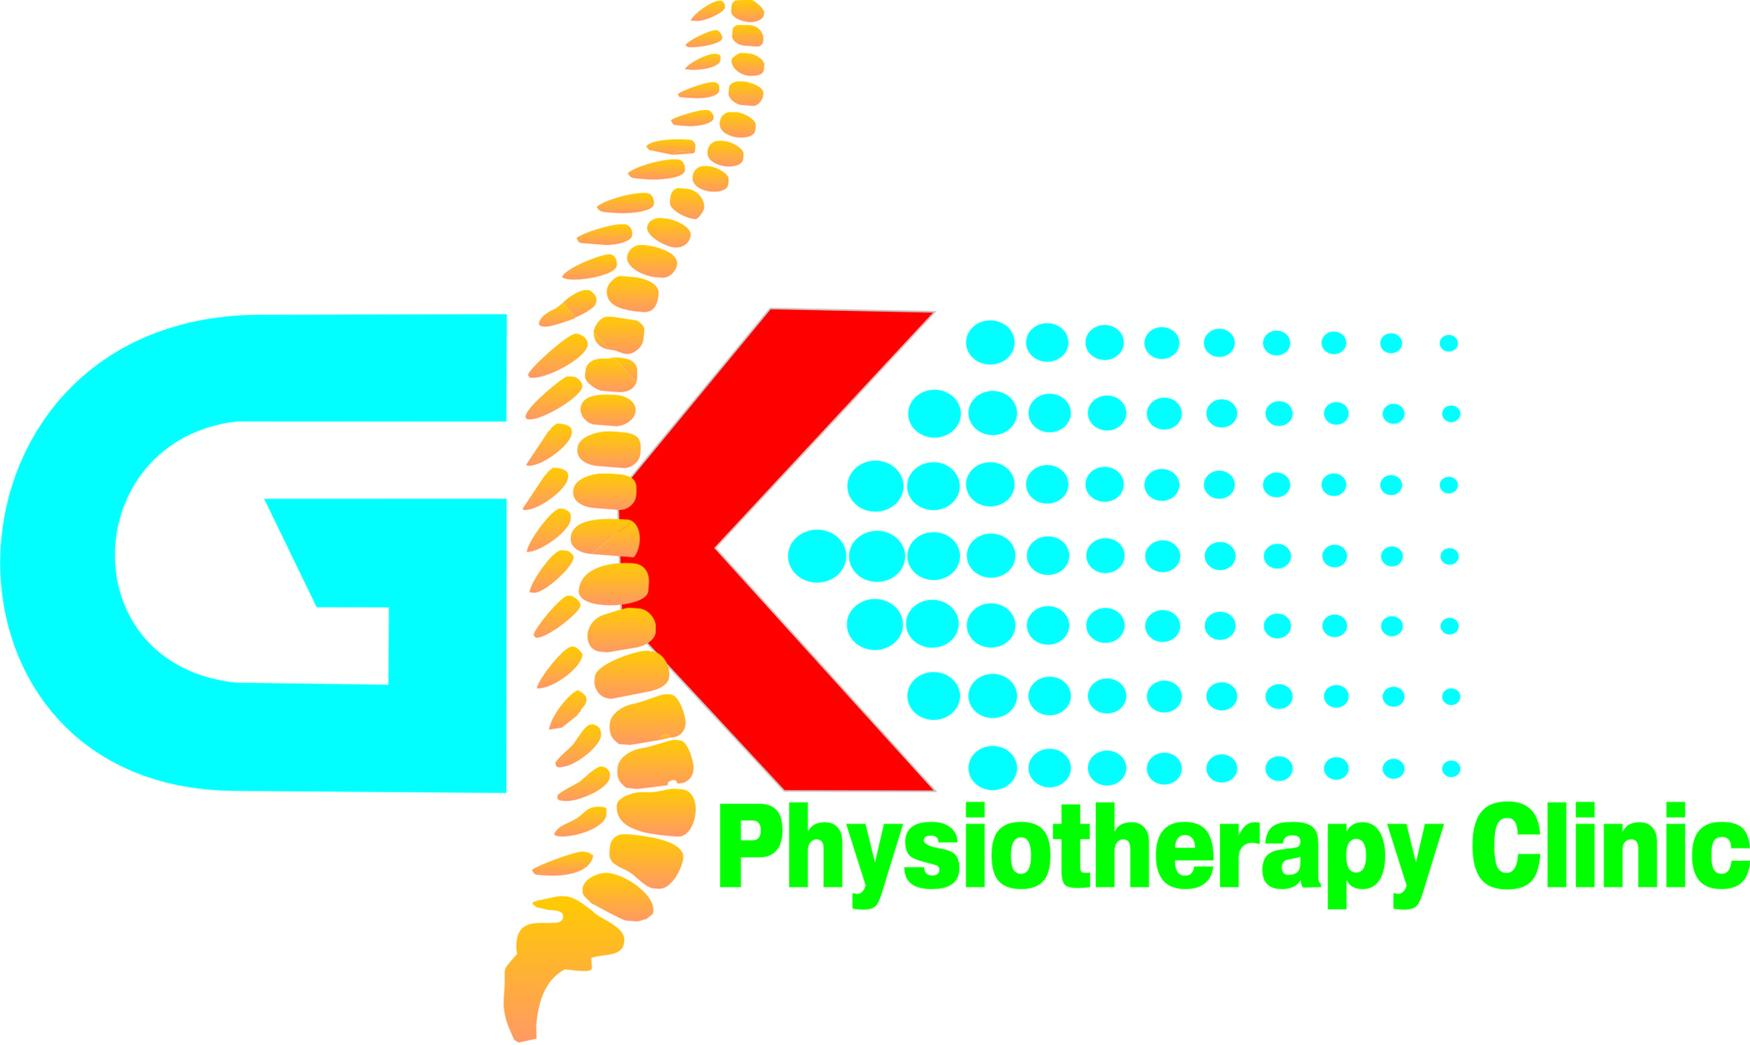 G.K. Physiotherapy Clinic